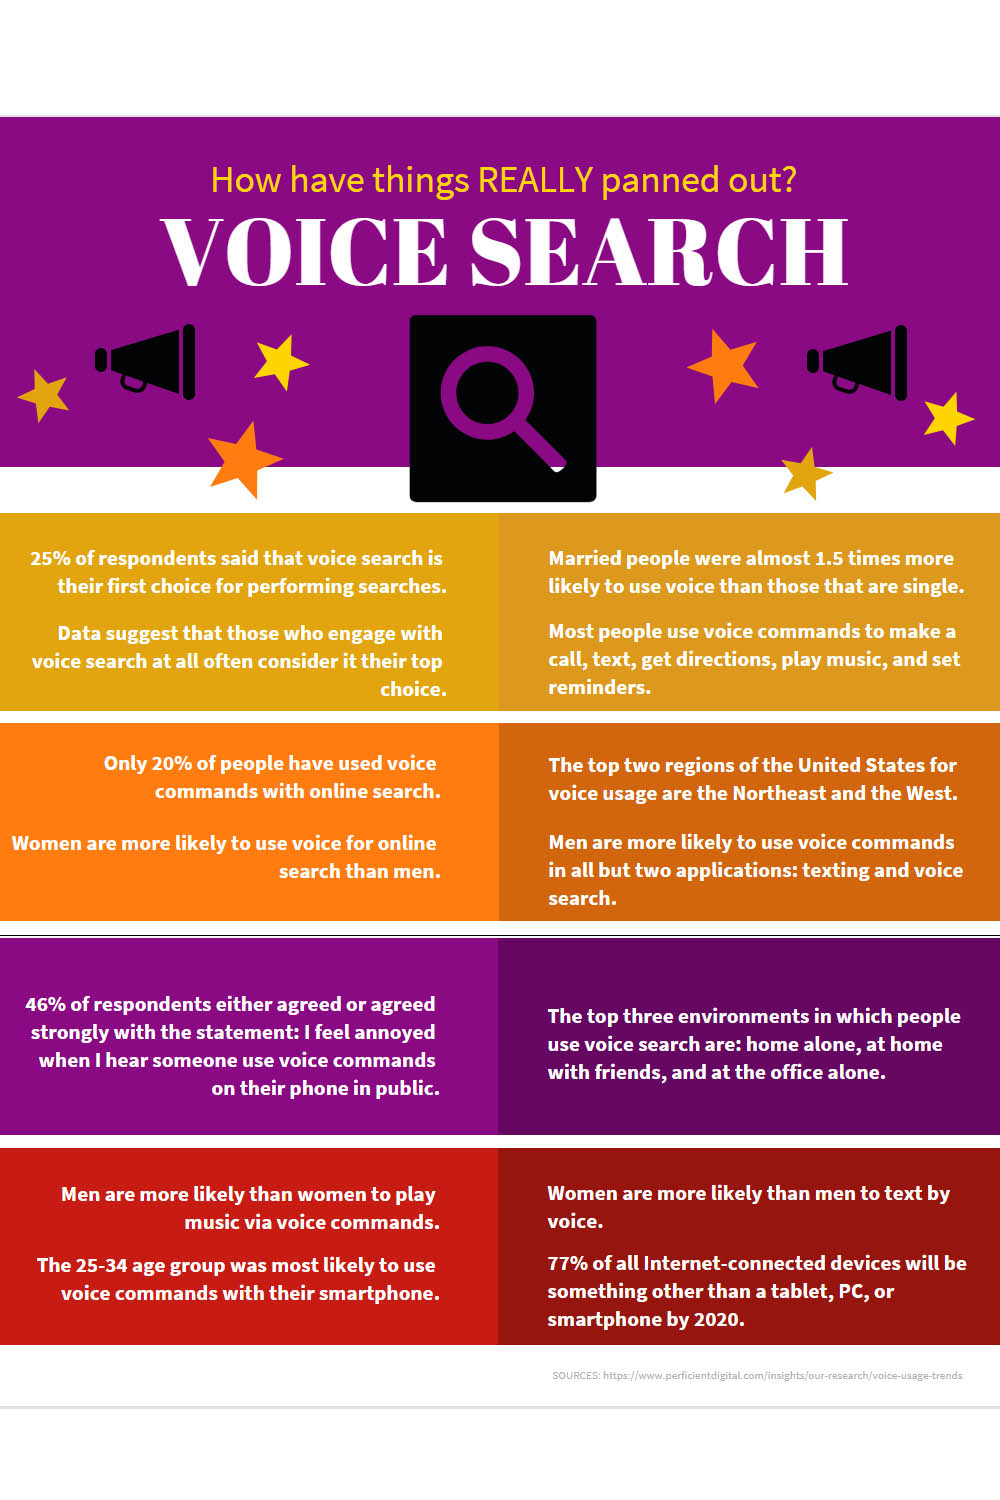 infographic showing some results of a study on the use of voice search